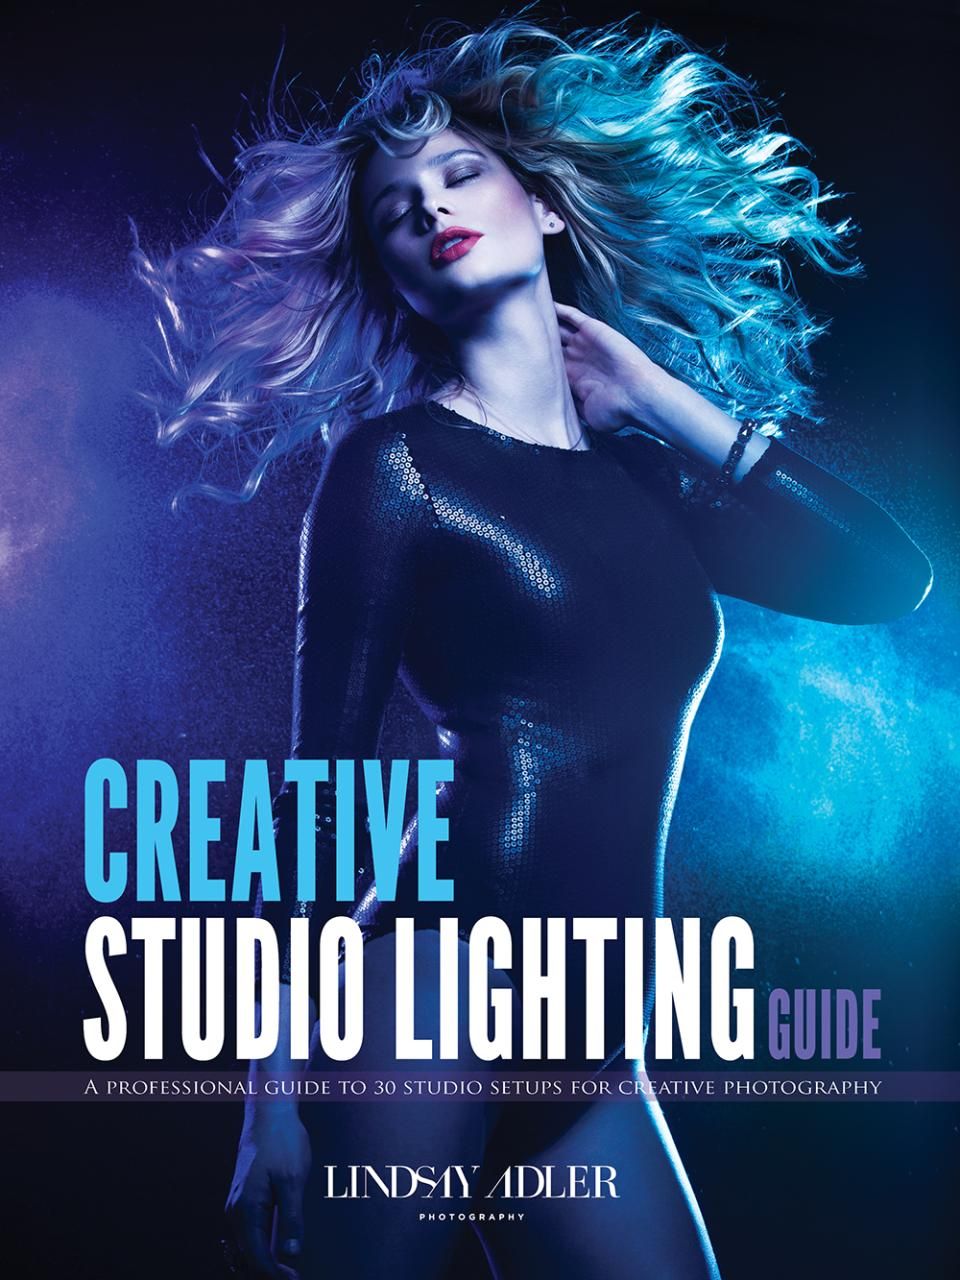 6 Questions for Lighting Master Lindsay Adler About Her New Book ...